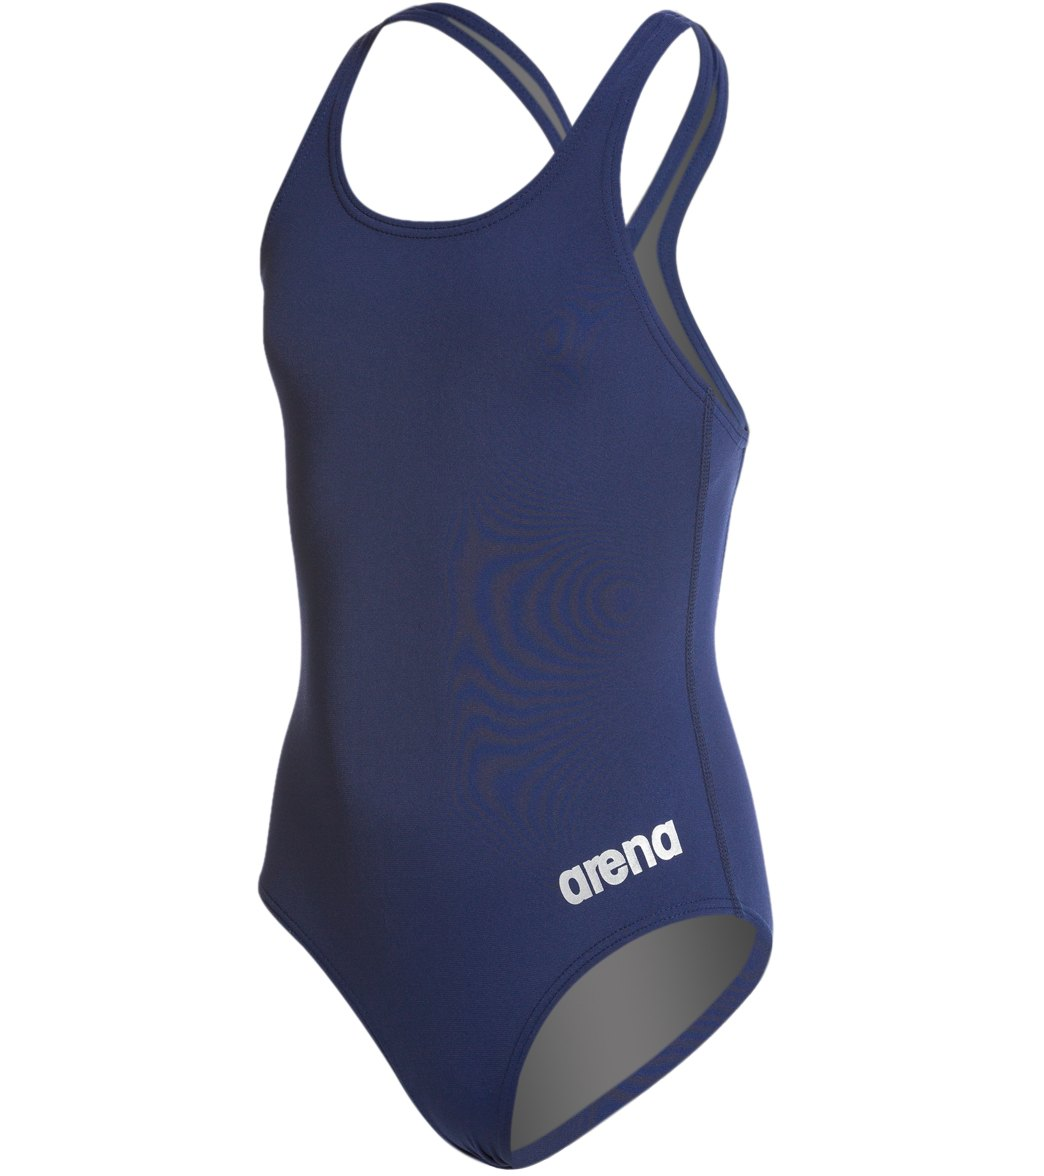 33f527e88eae2 Arena Girls' Madison Athletic Thick Strap Racer Back One Piece Swimsuit at  SwimOutlet.com - Free Shipping